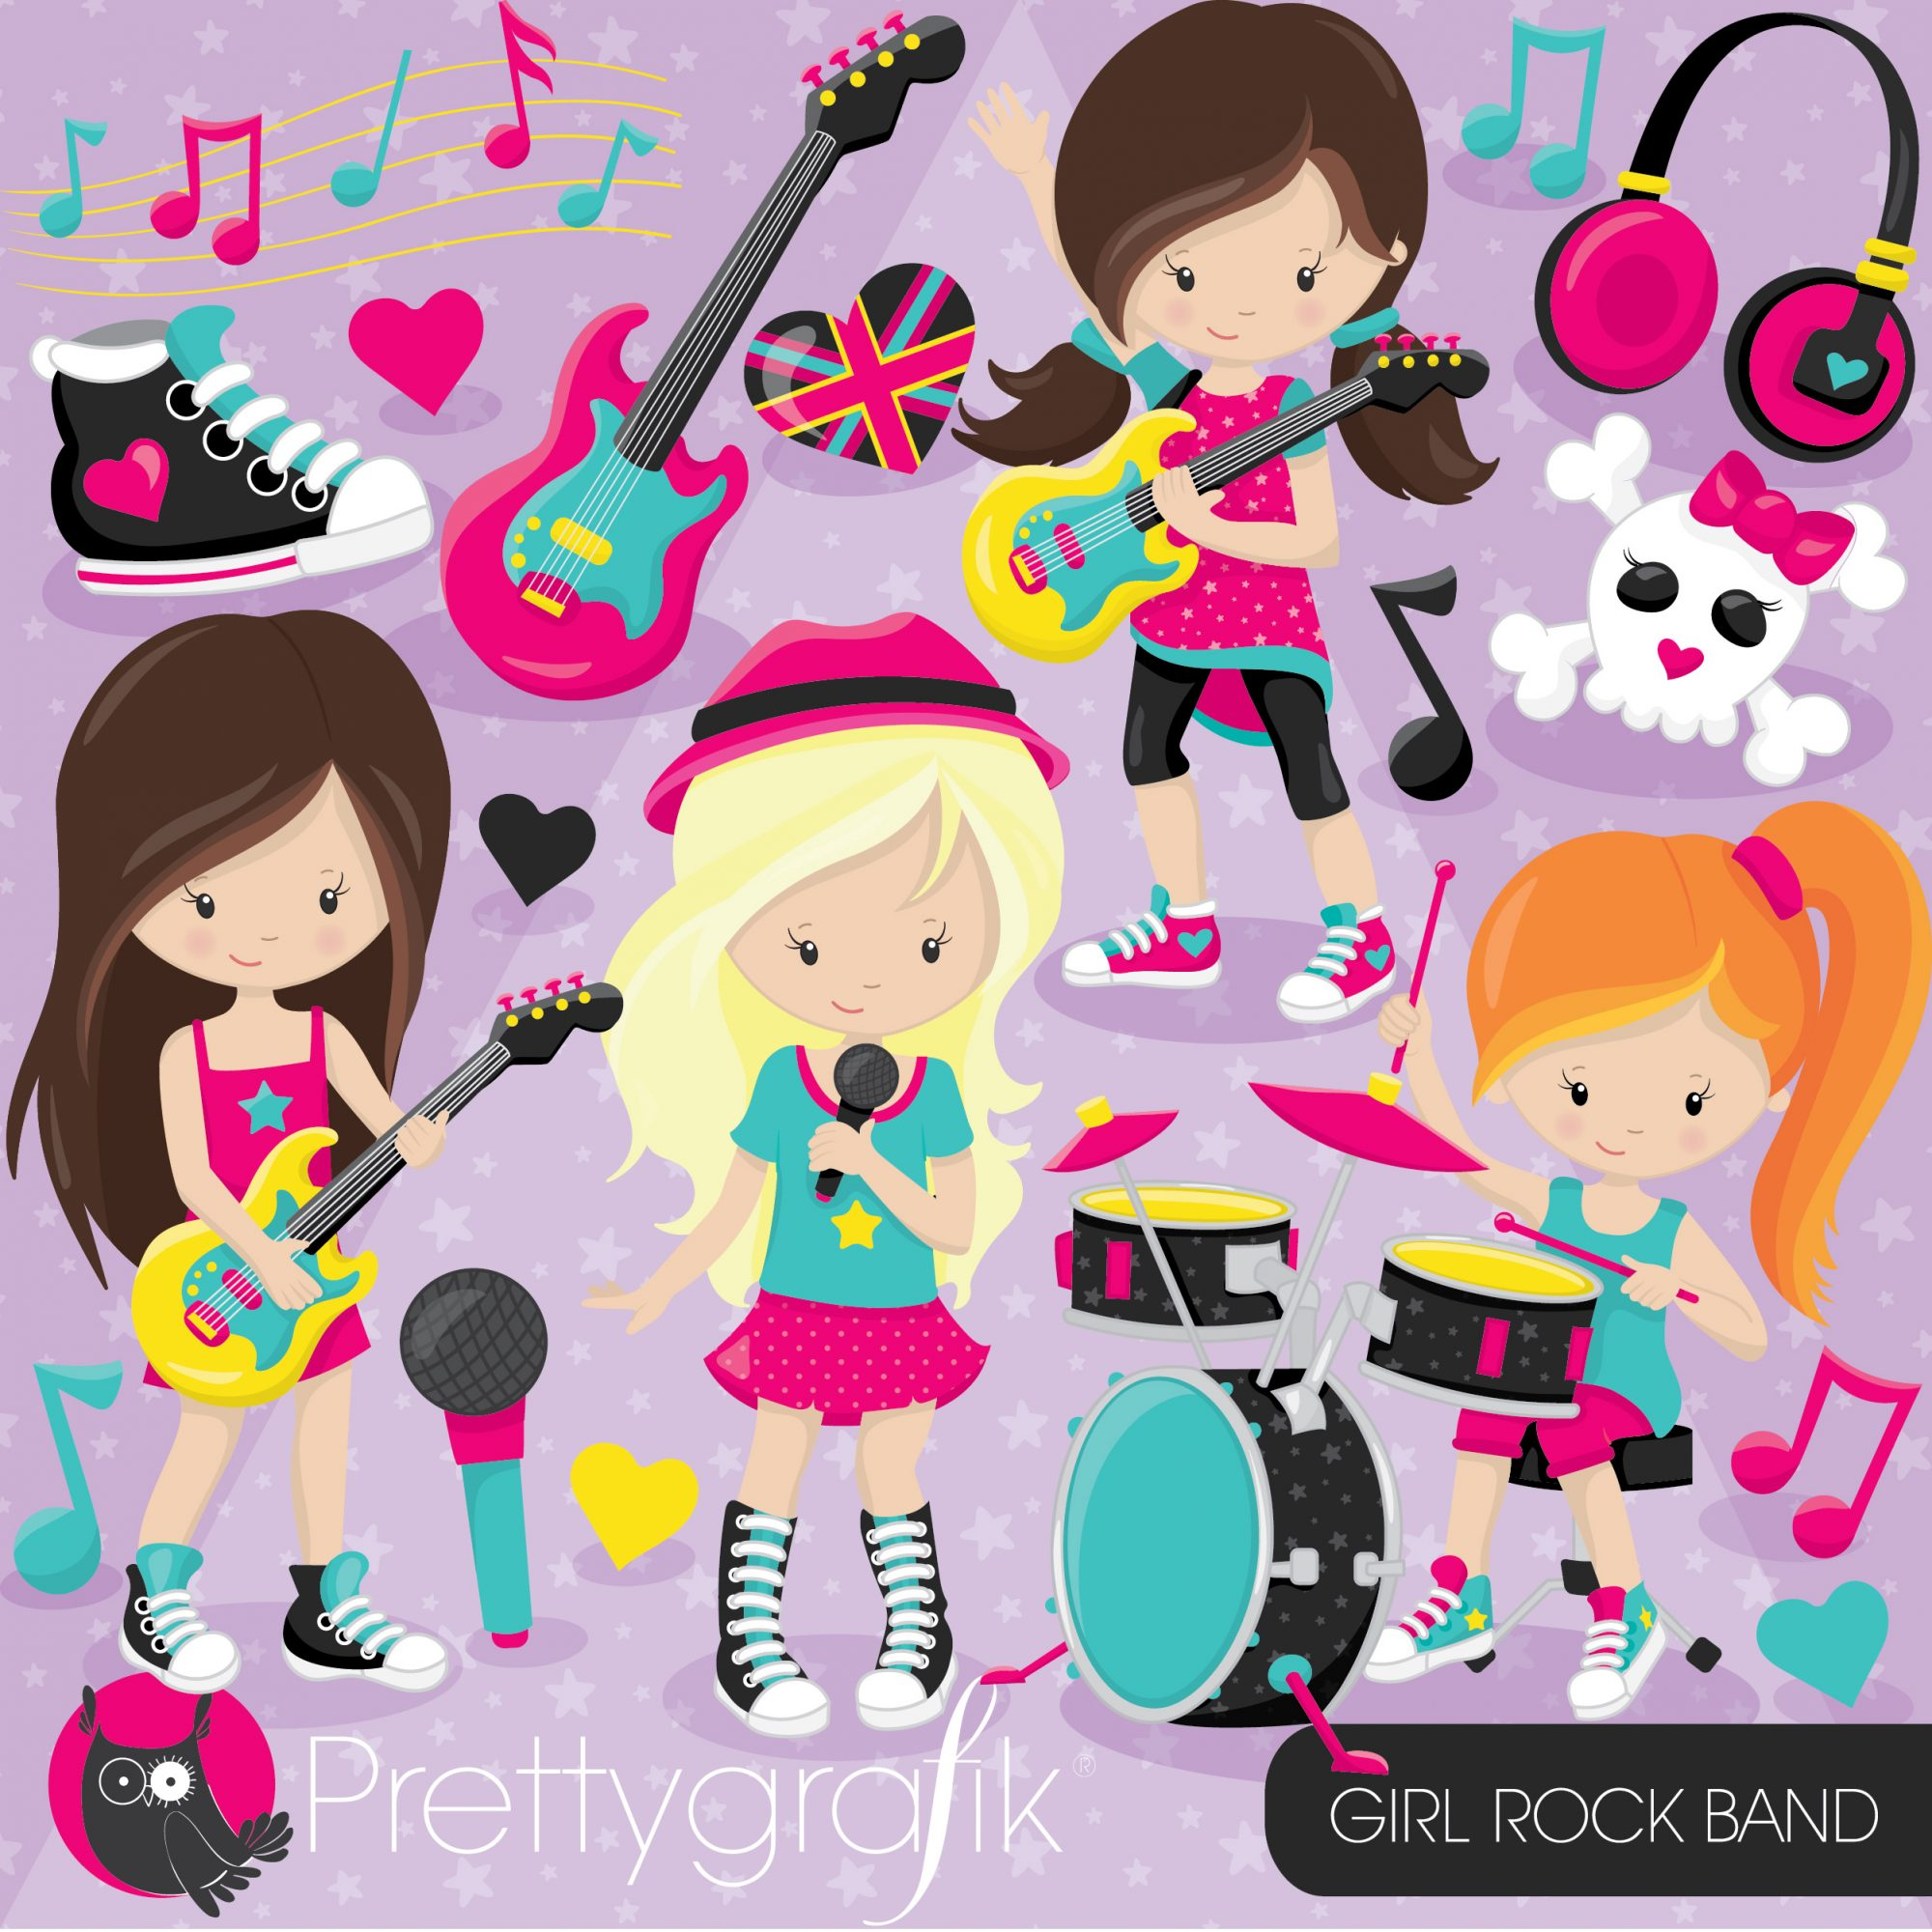 Girl rock band clipart.